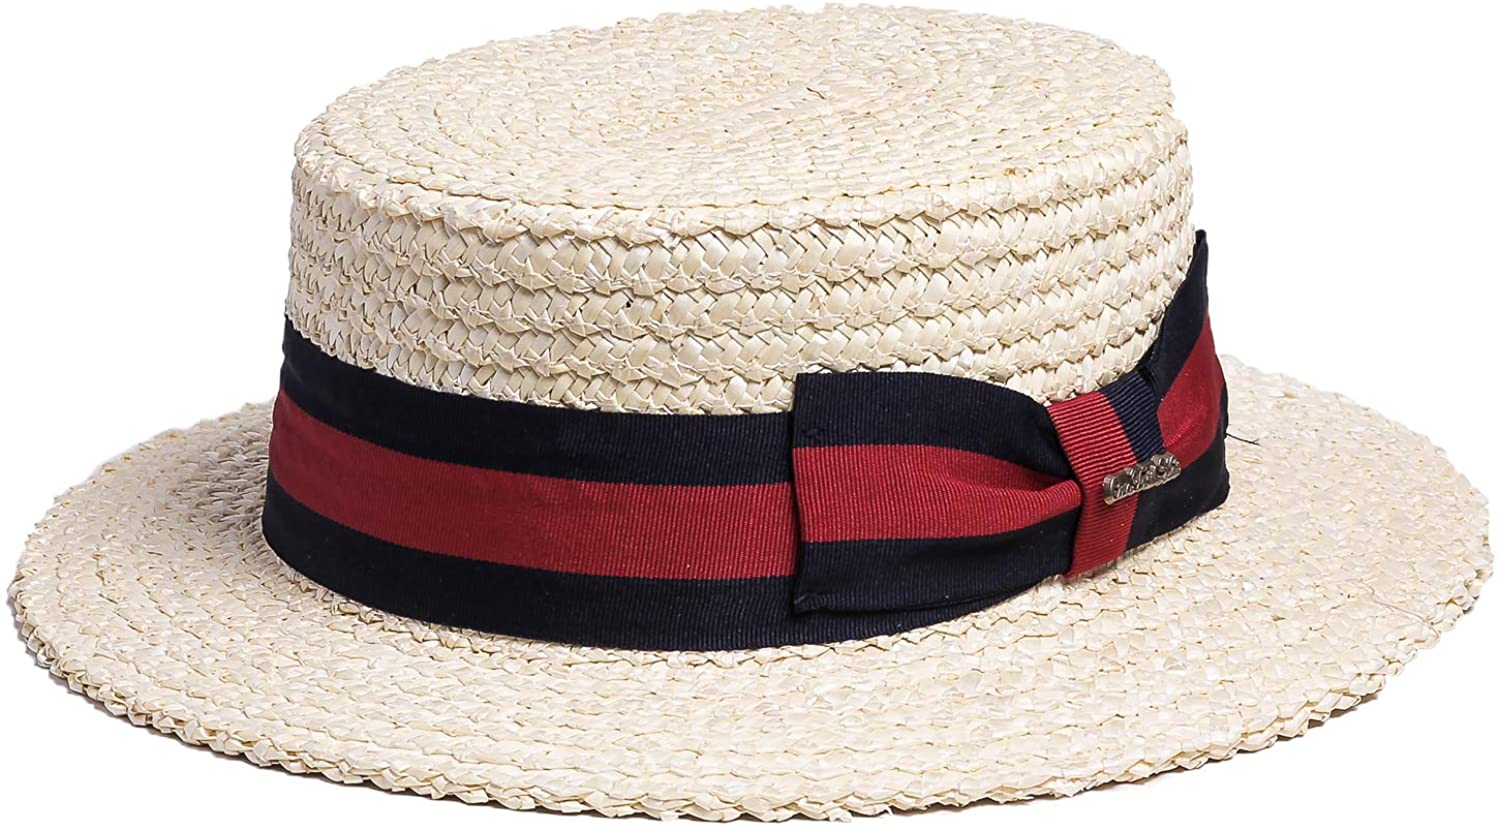 1920s Fashion for Men Bellmora Mens Classic Straw Braid Boater Hat $49.99 AT vintagedancer.com